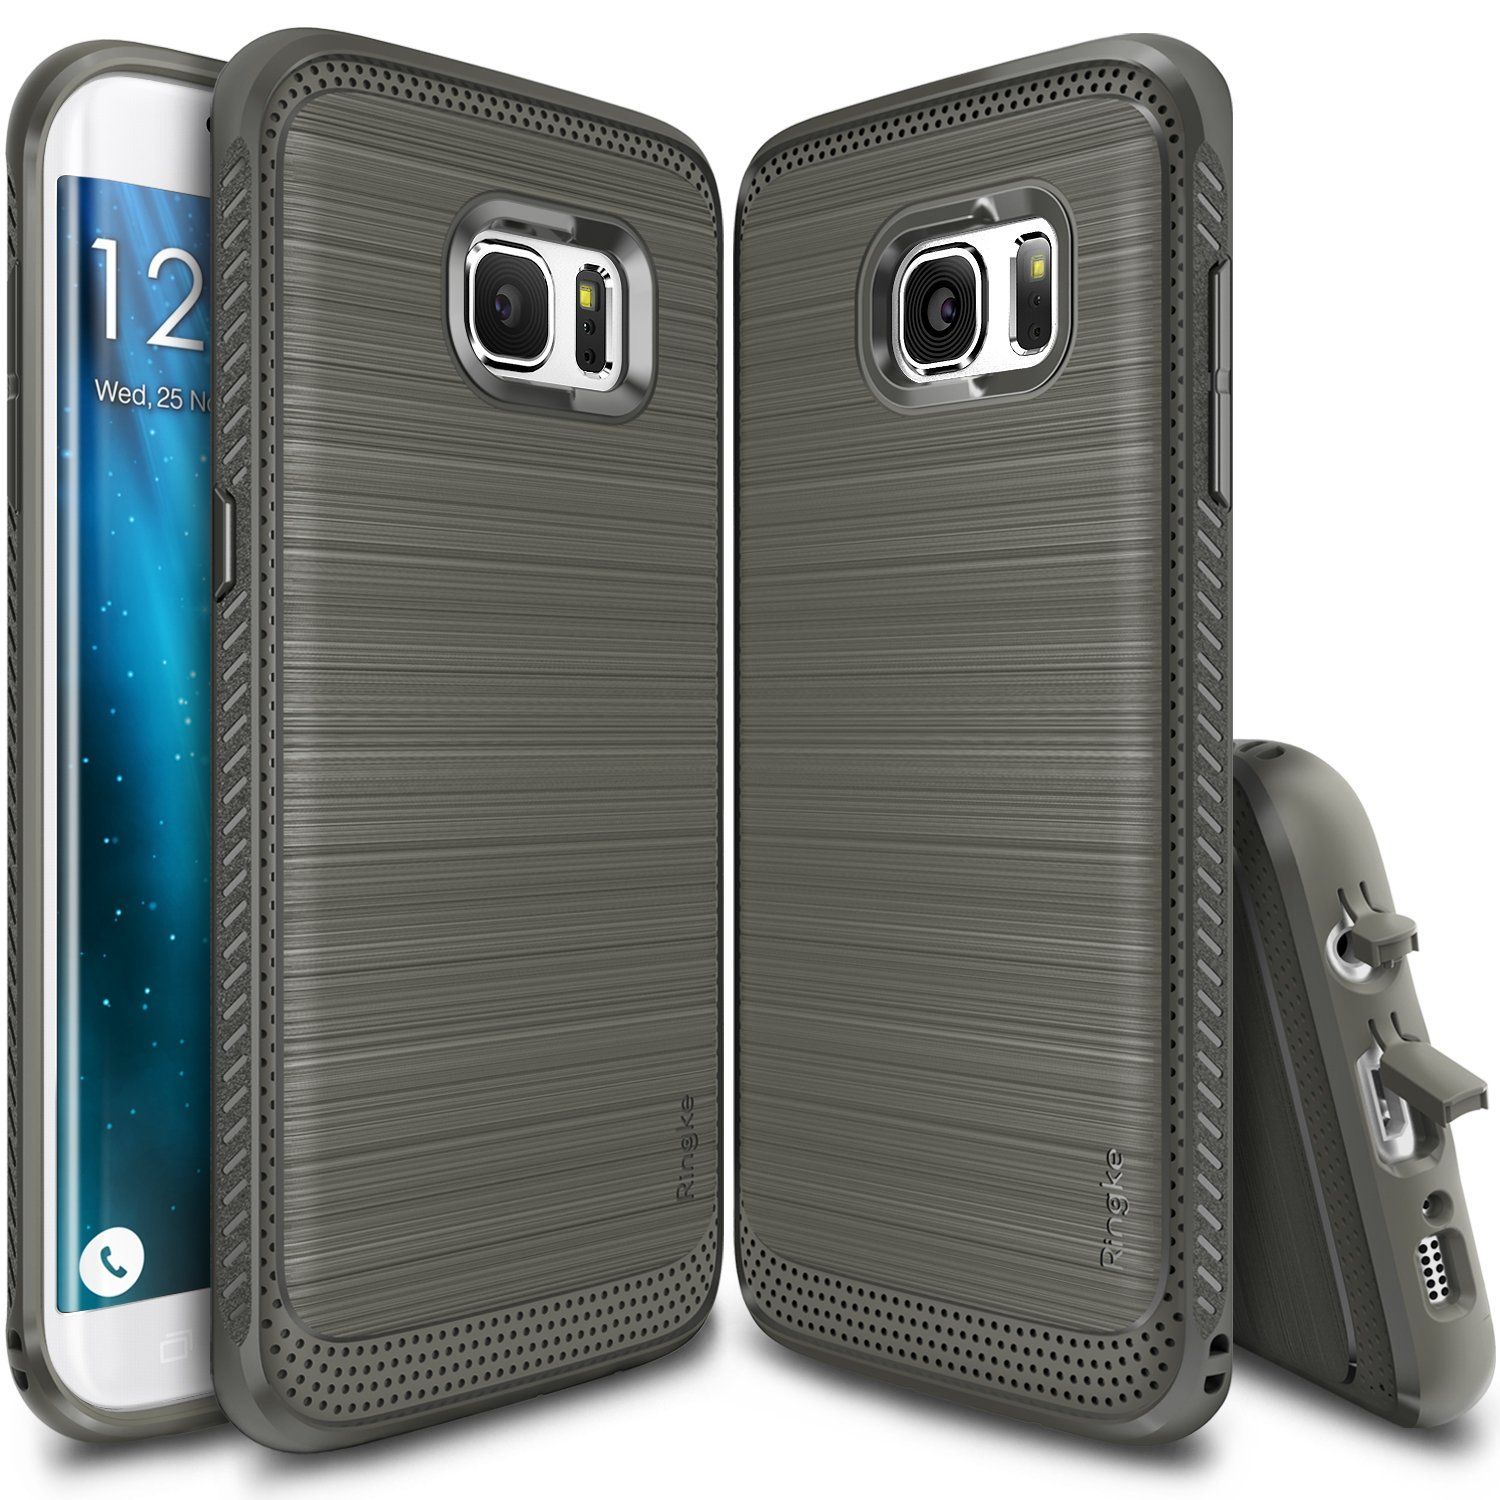 Galaxy S7 Edge Case, Ringke ONYX [Mist Gray] Improved Strength Flexible TPU Defensive Case for Samsung Galaxy S7 Edge